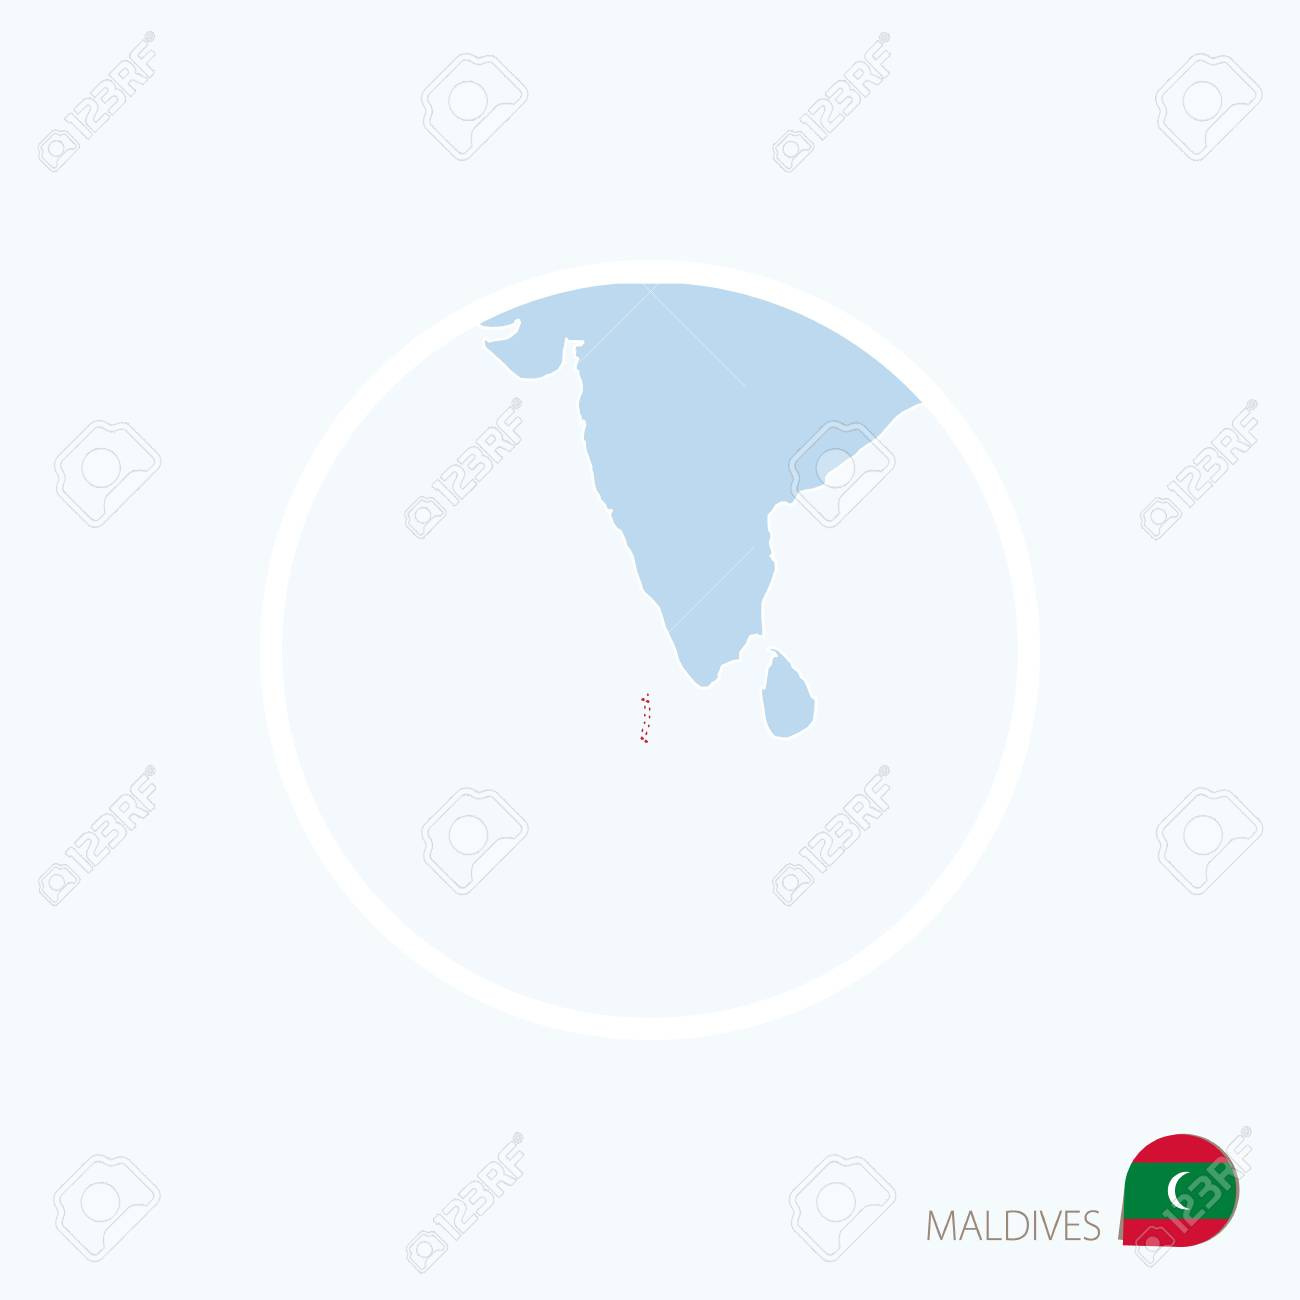 Map Icon Of Maldives Blue Map Of South Asia With Highlighted